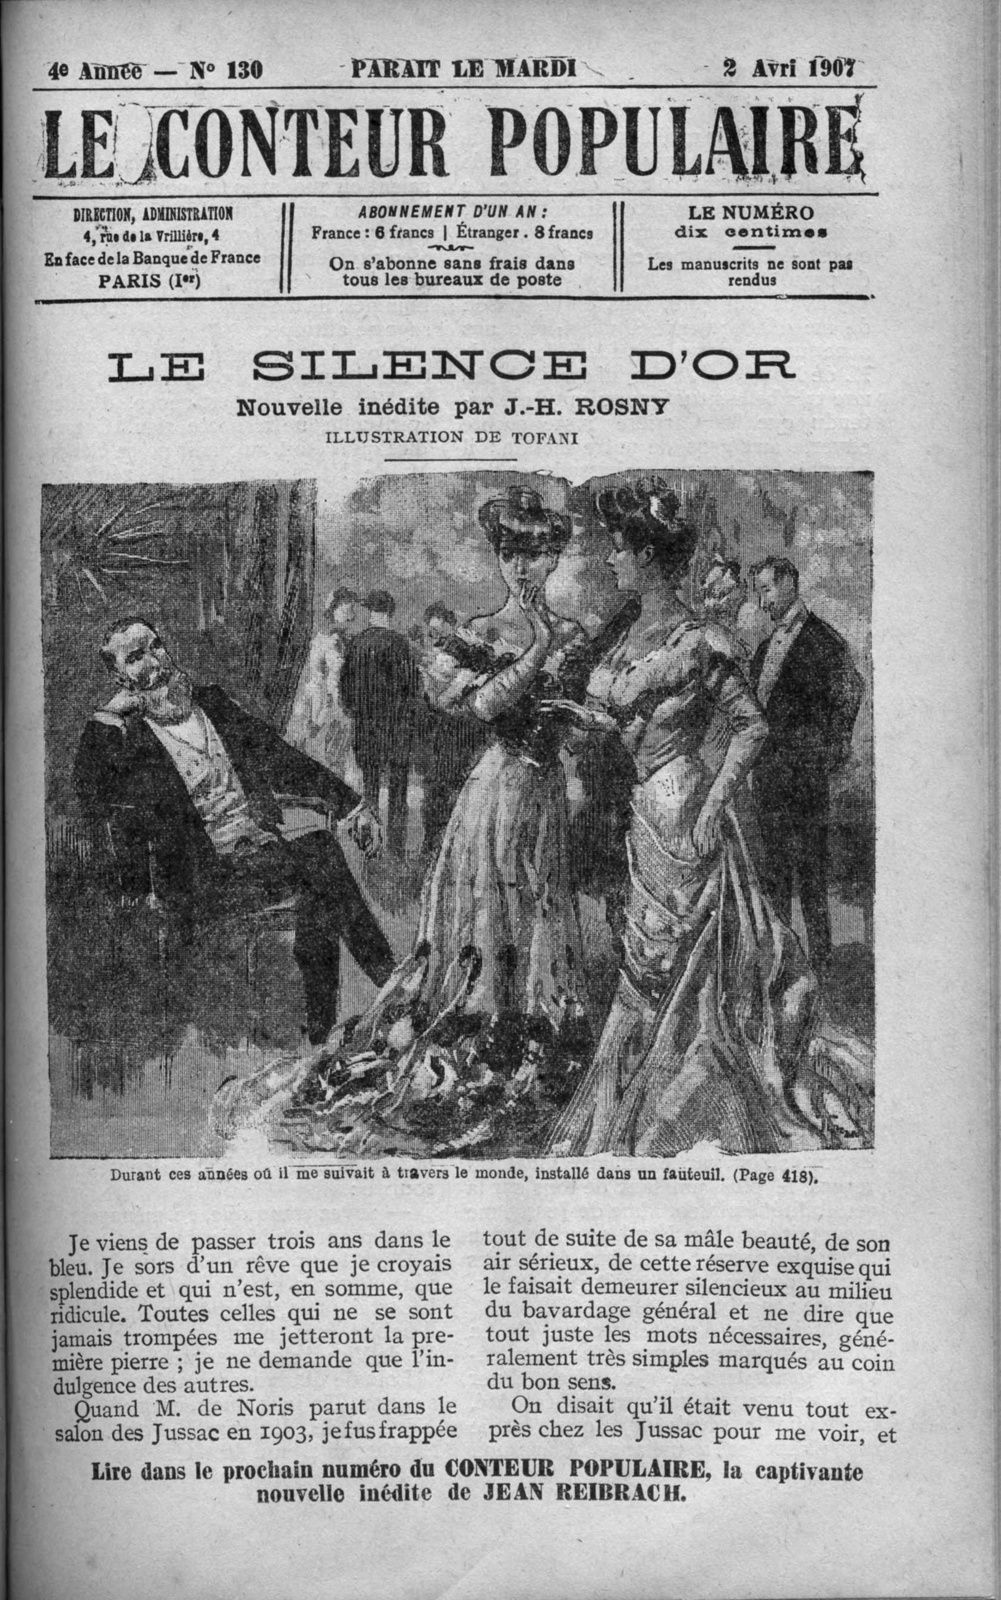 """J.-H. Rosny """"Le Silence d'or"""" in Le Conteur populaire (1907)"""